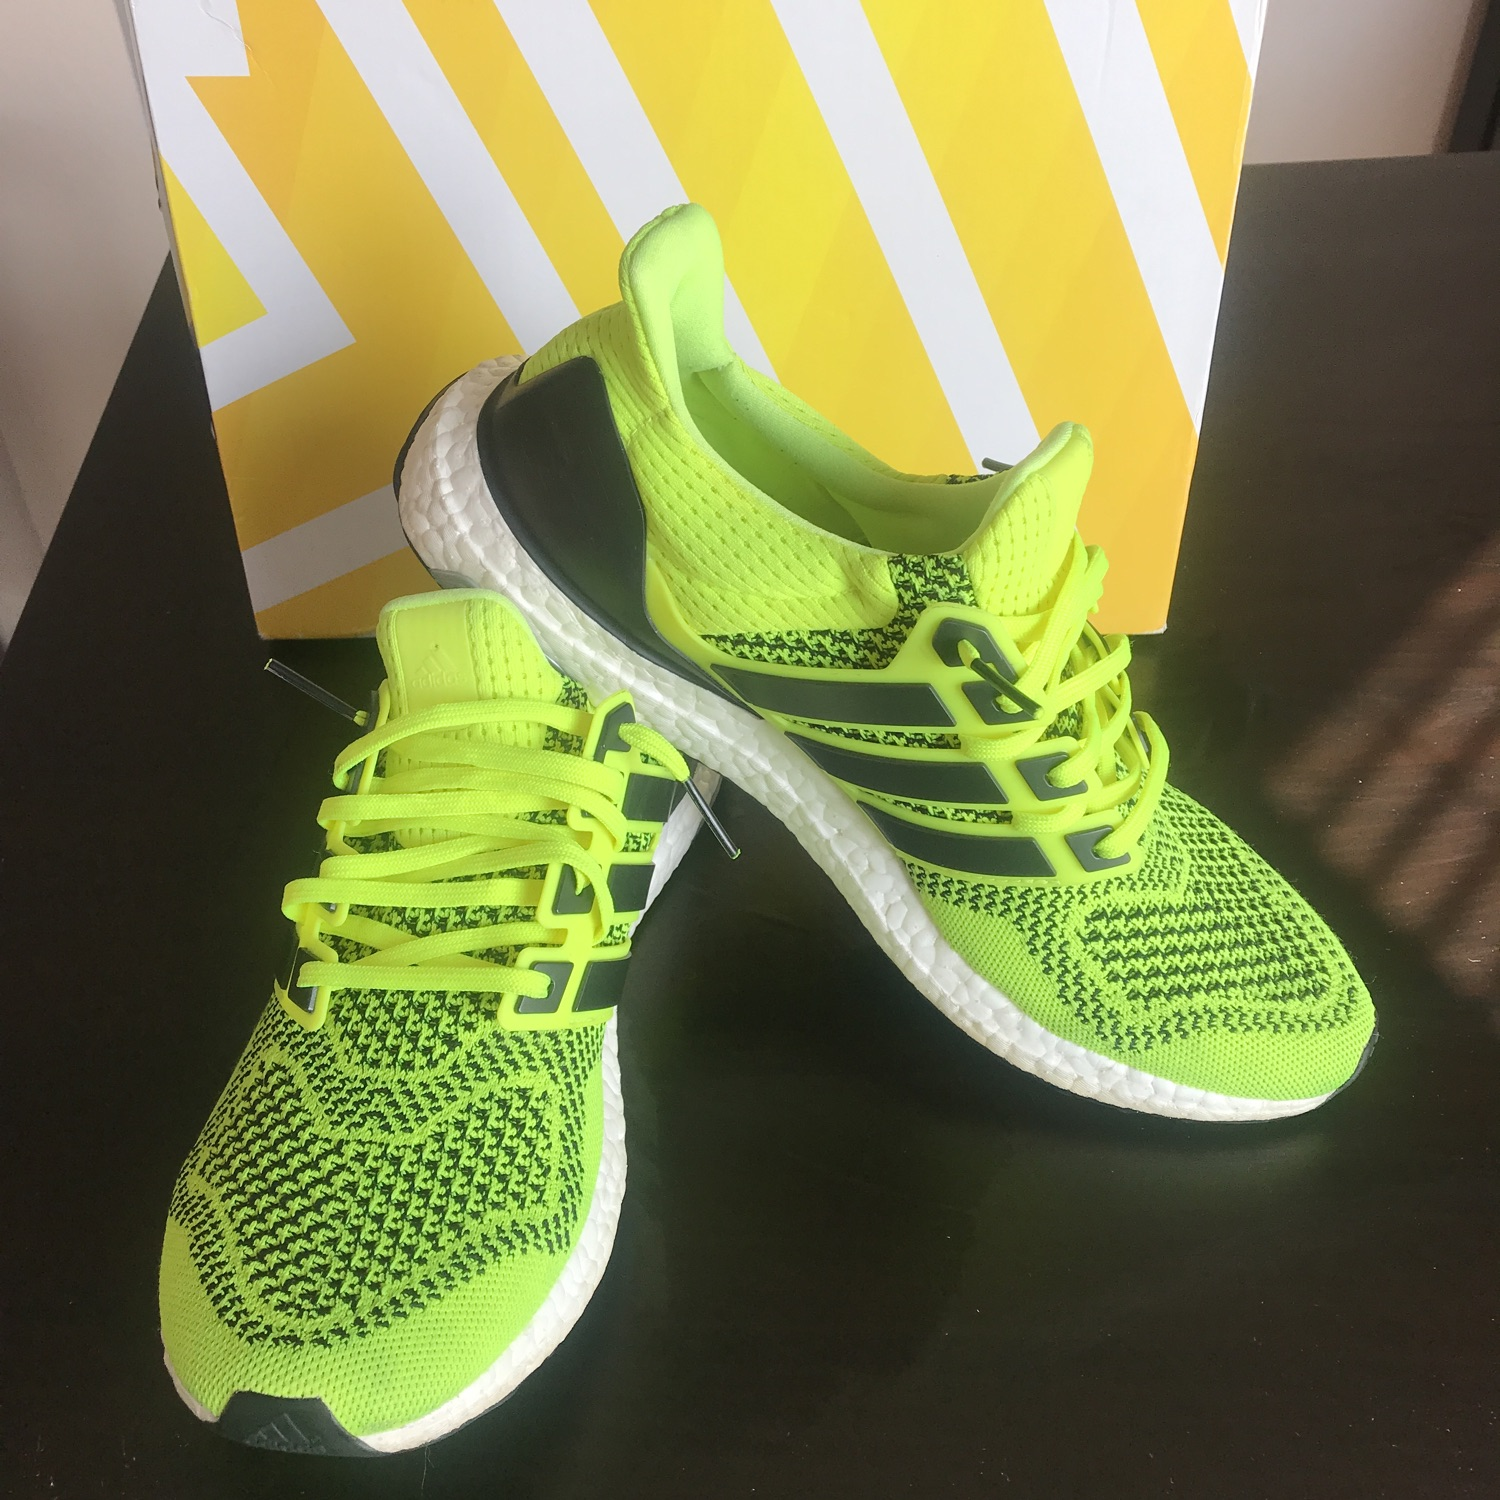 Adidas Ultra Boost 1.0 Solar Yellow | Sneakers men fashion